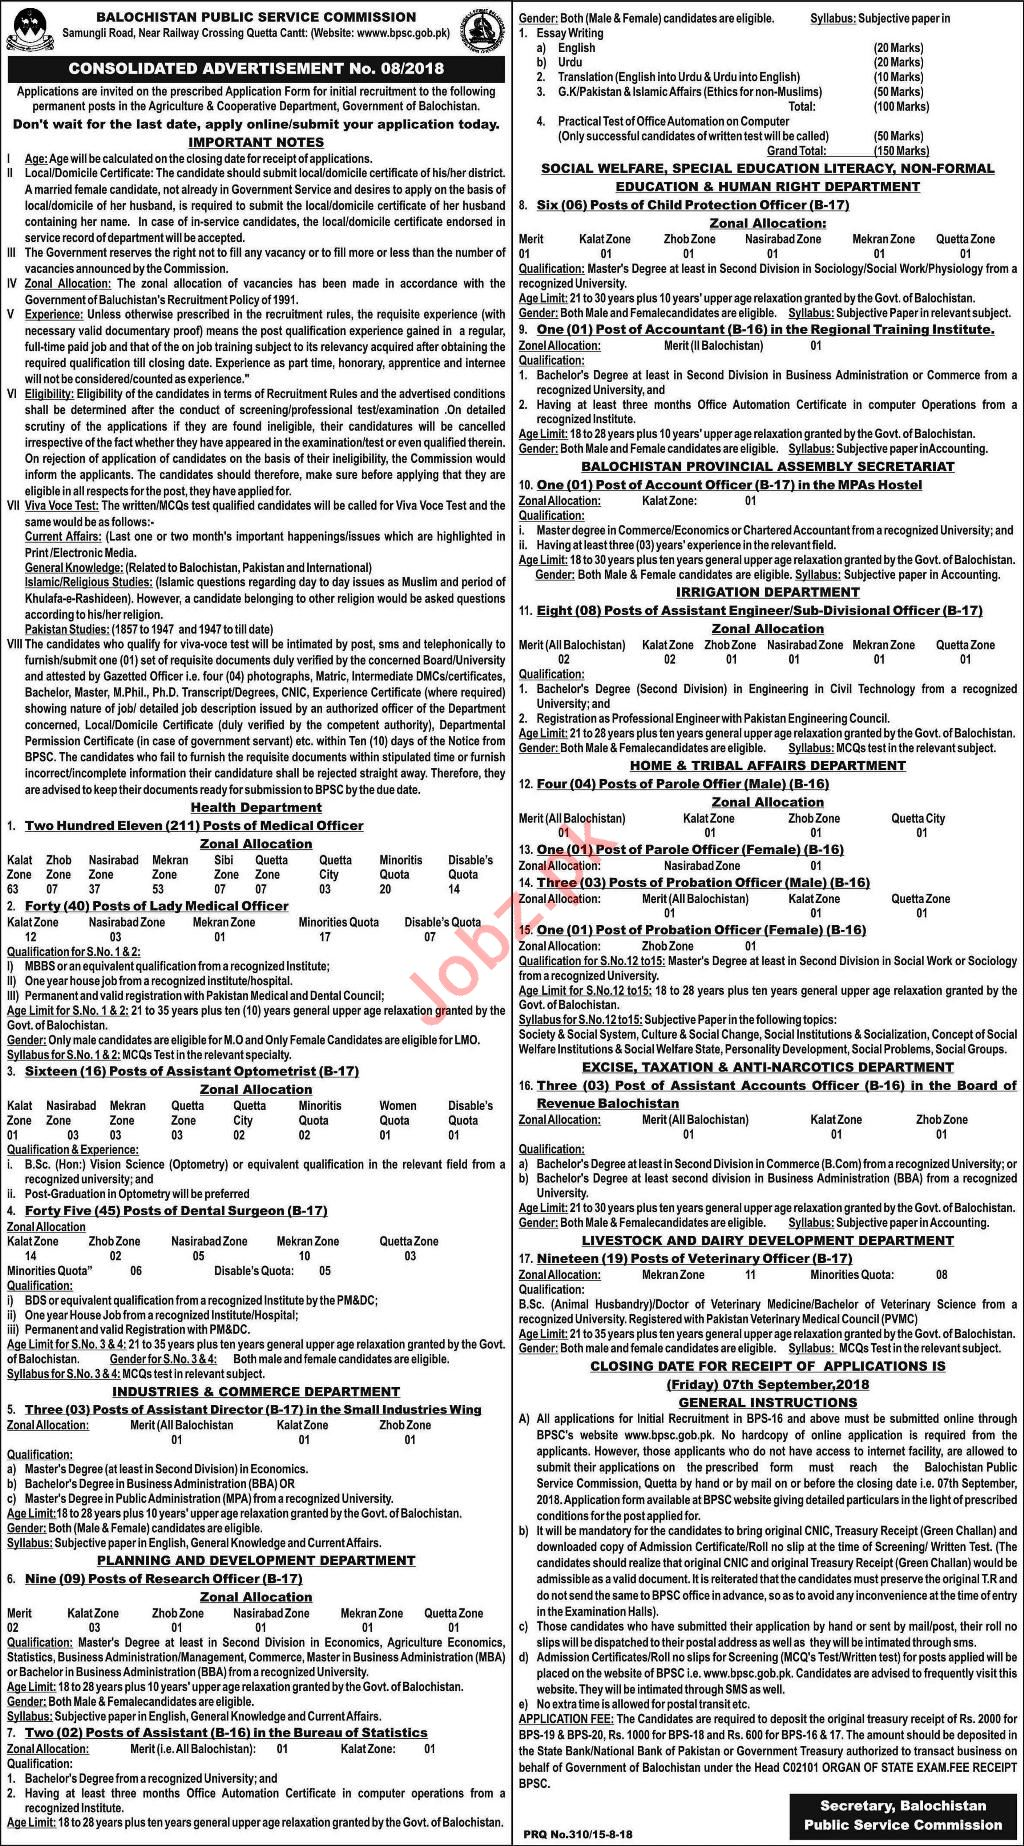 BPSC Health Department Quetta Medical Officers Jobs 2018